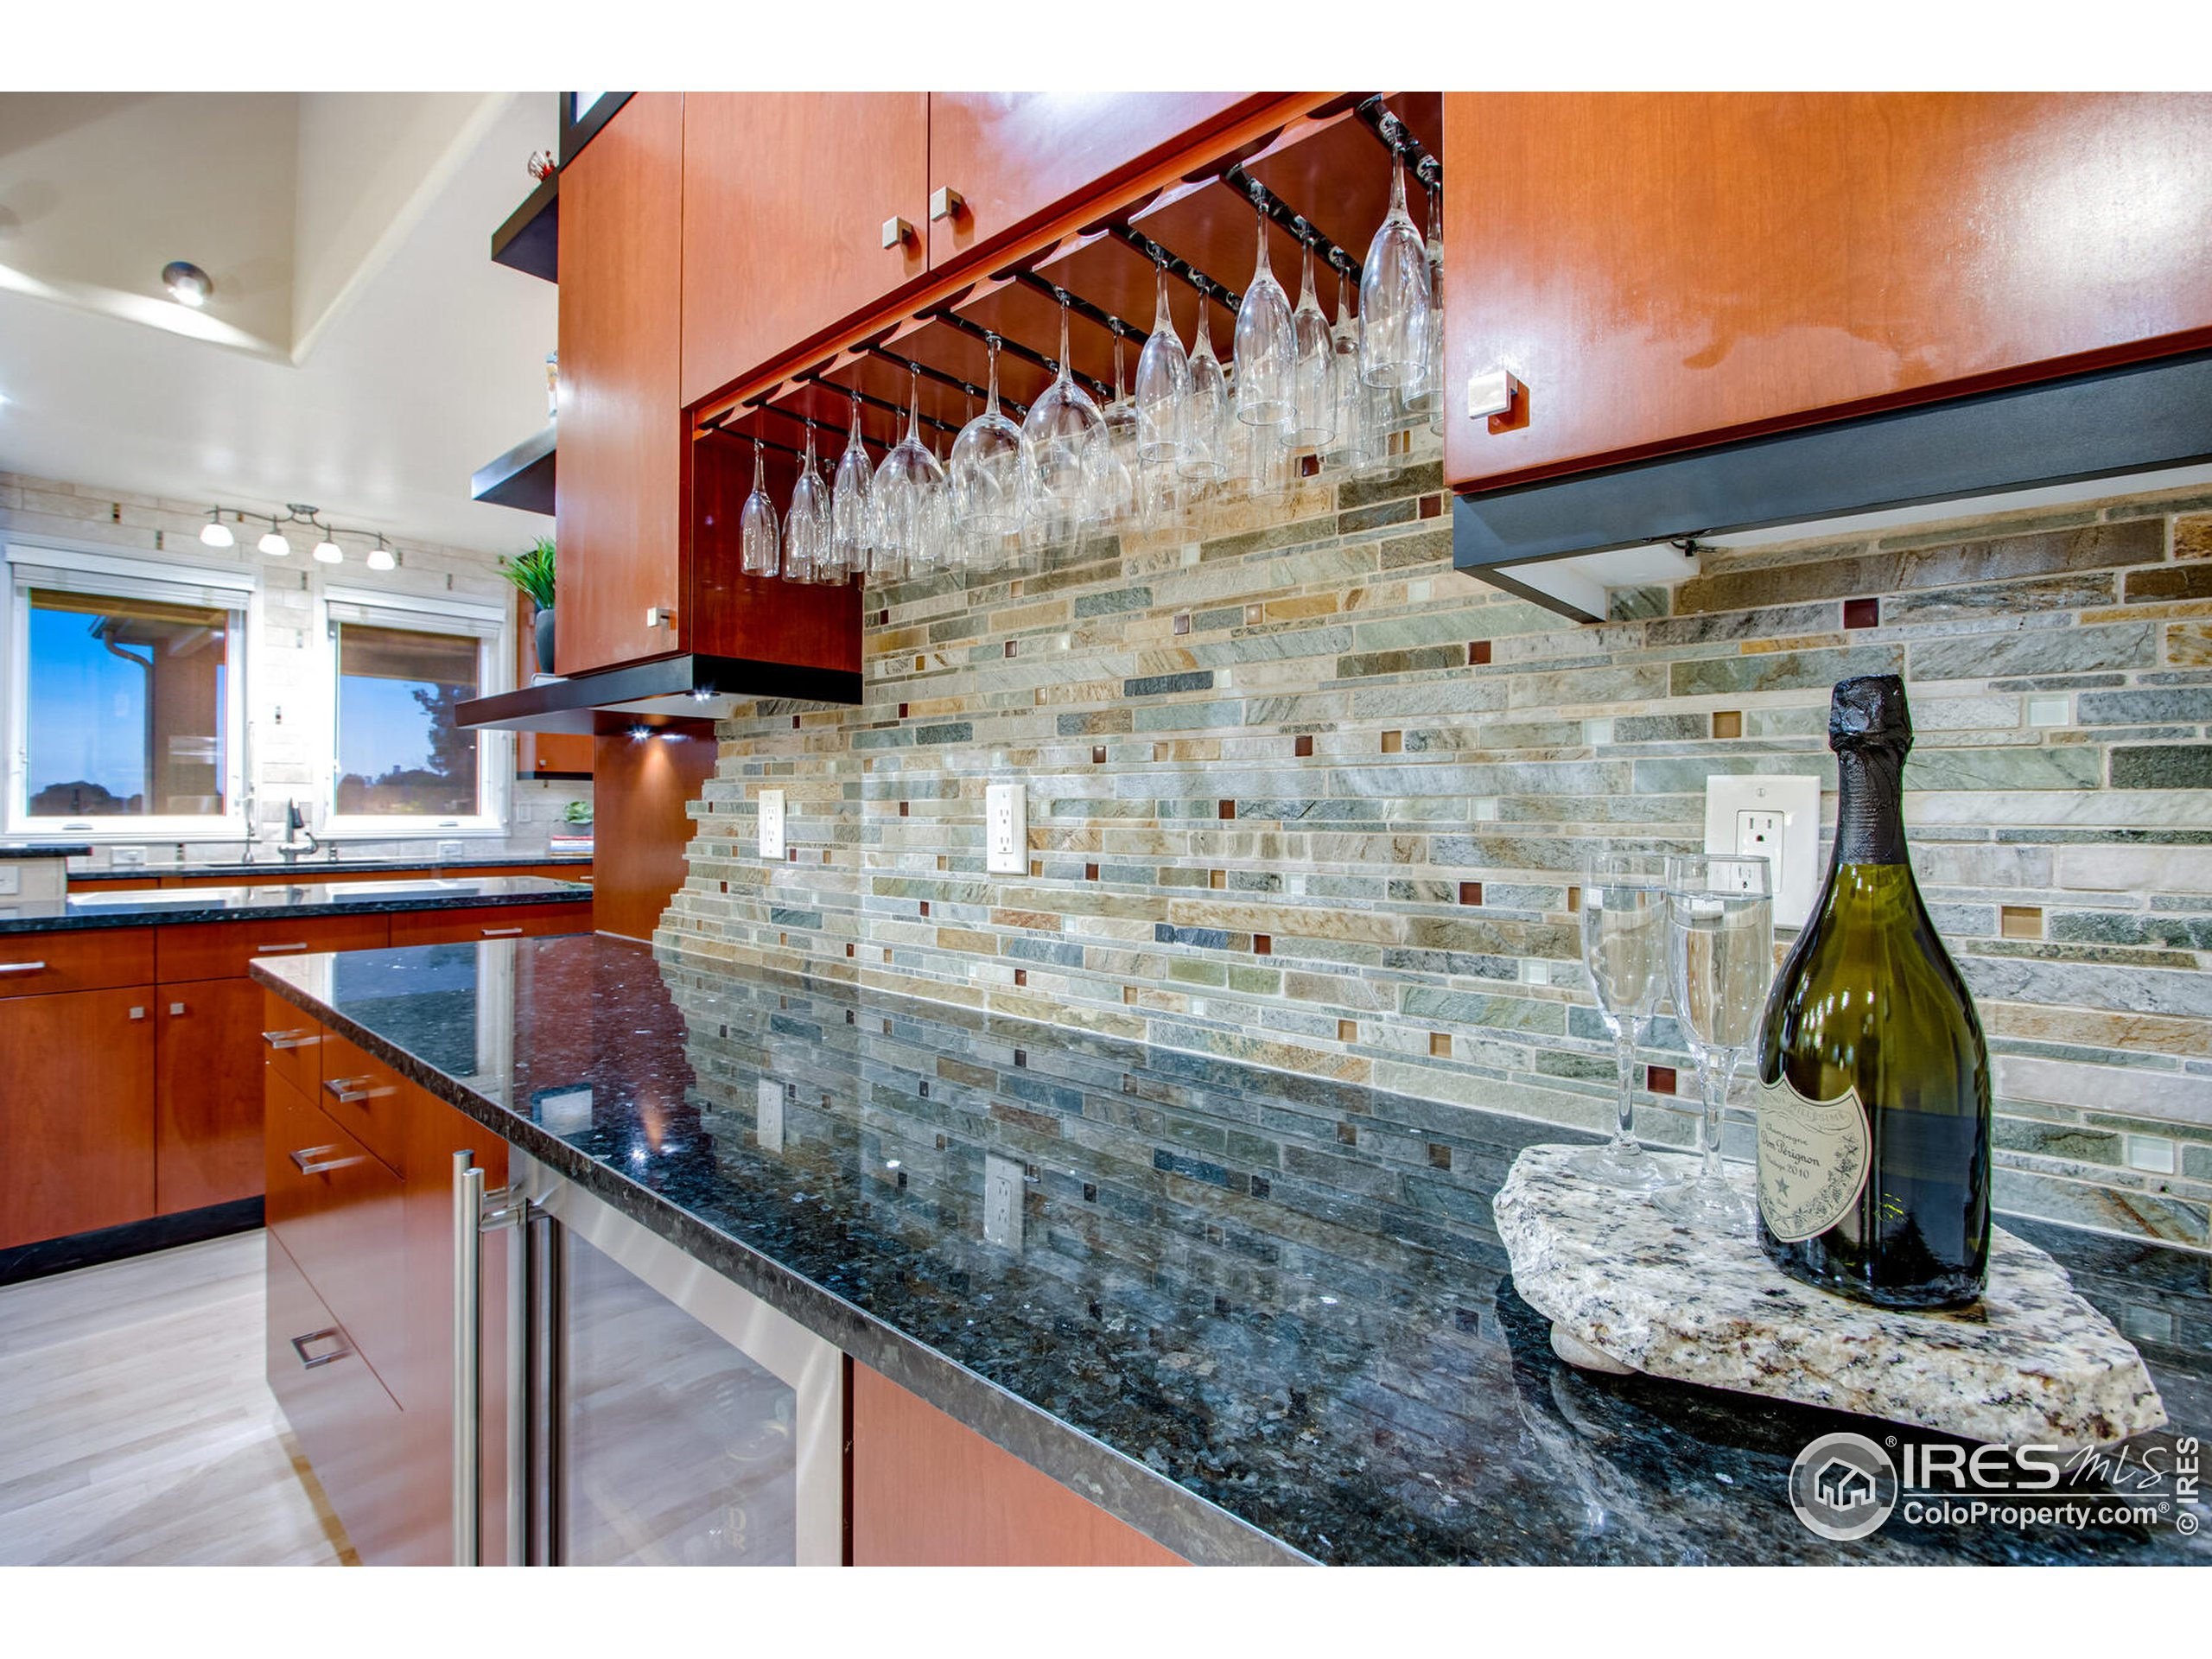 All Custom Cabinetry, Granite Countertops, Scotsman Ice Maker, Marvel Wine & Beverage Frig & undercounter LED lights throughout